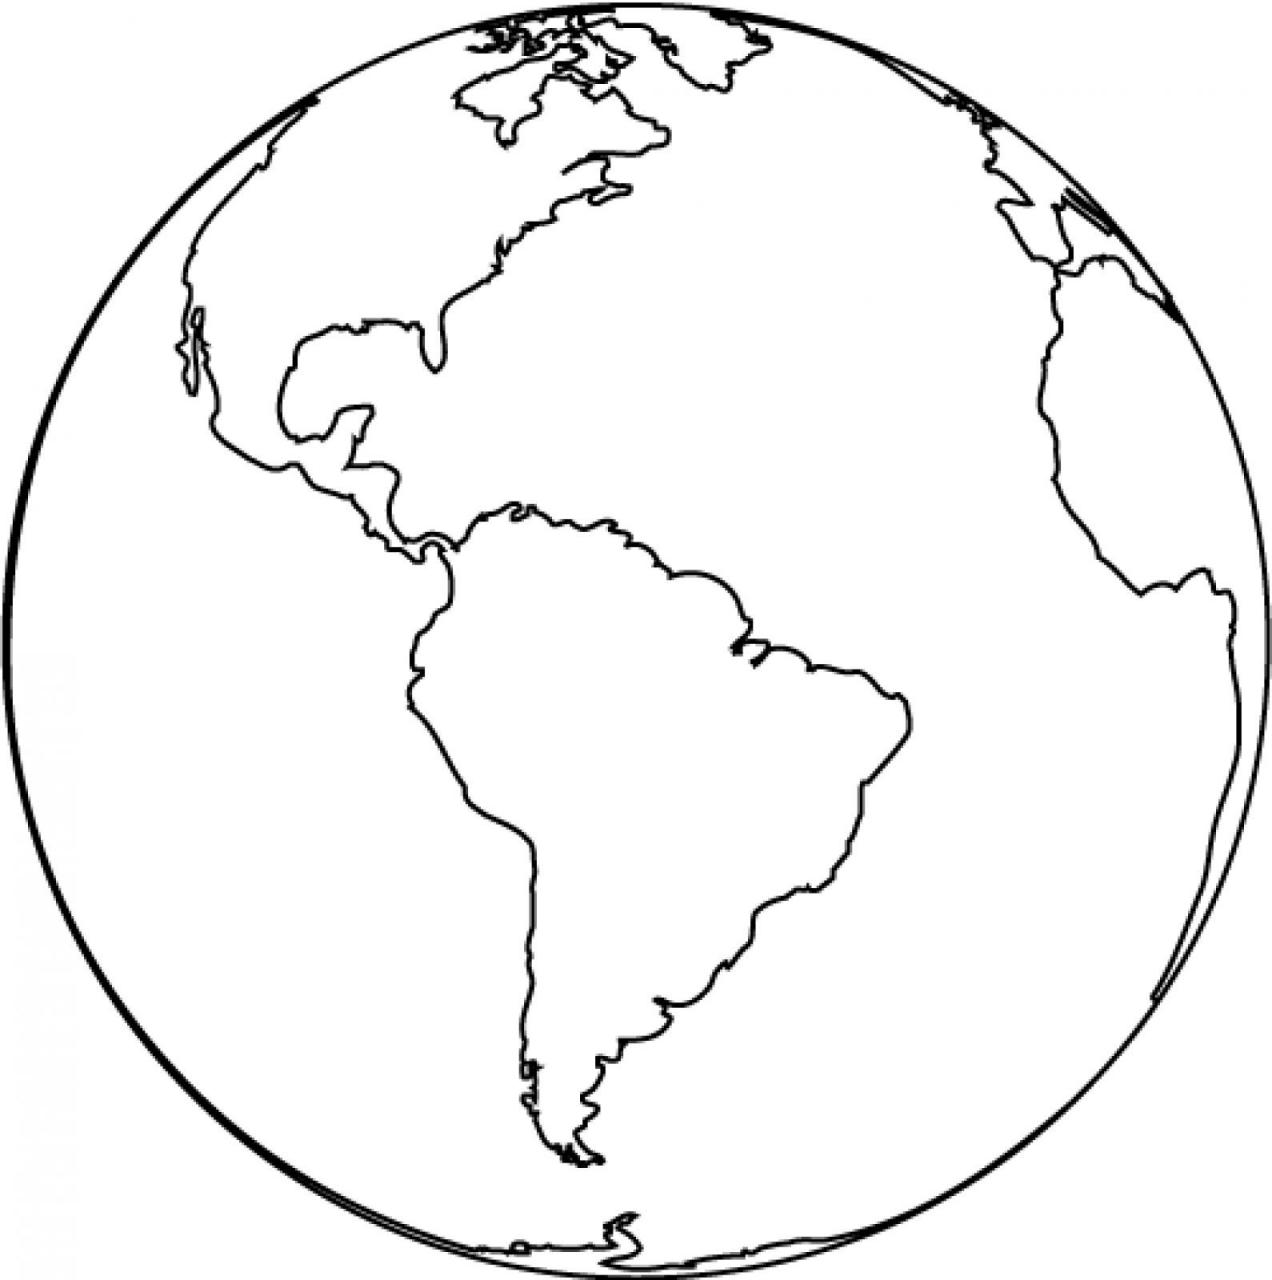 1272x1280 Black And White Earth Coloring Page Coloring Page For Kids Kids